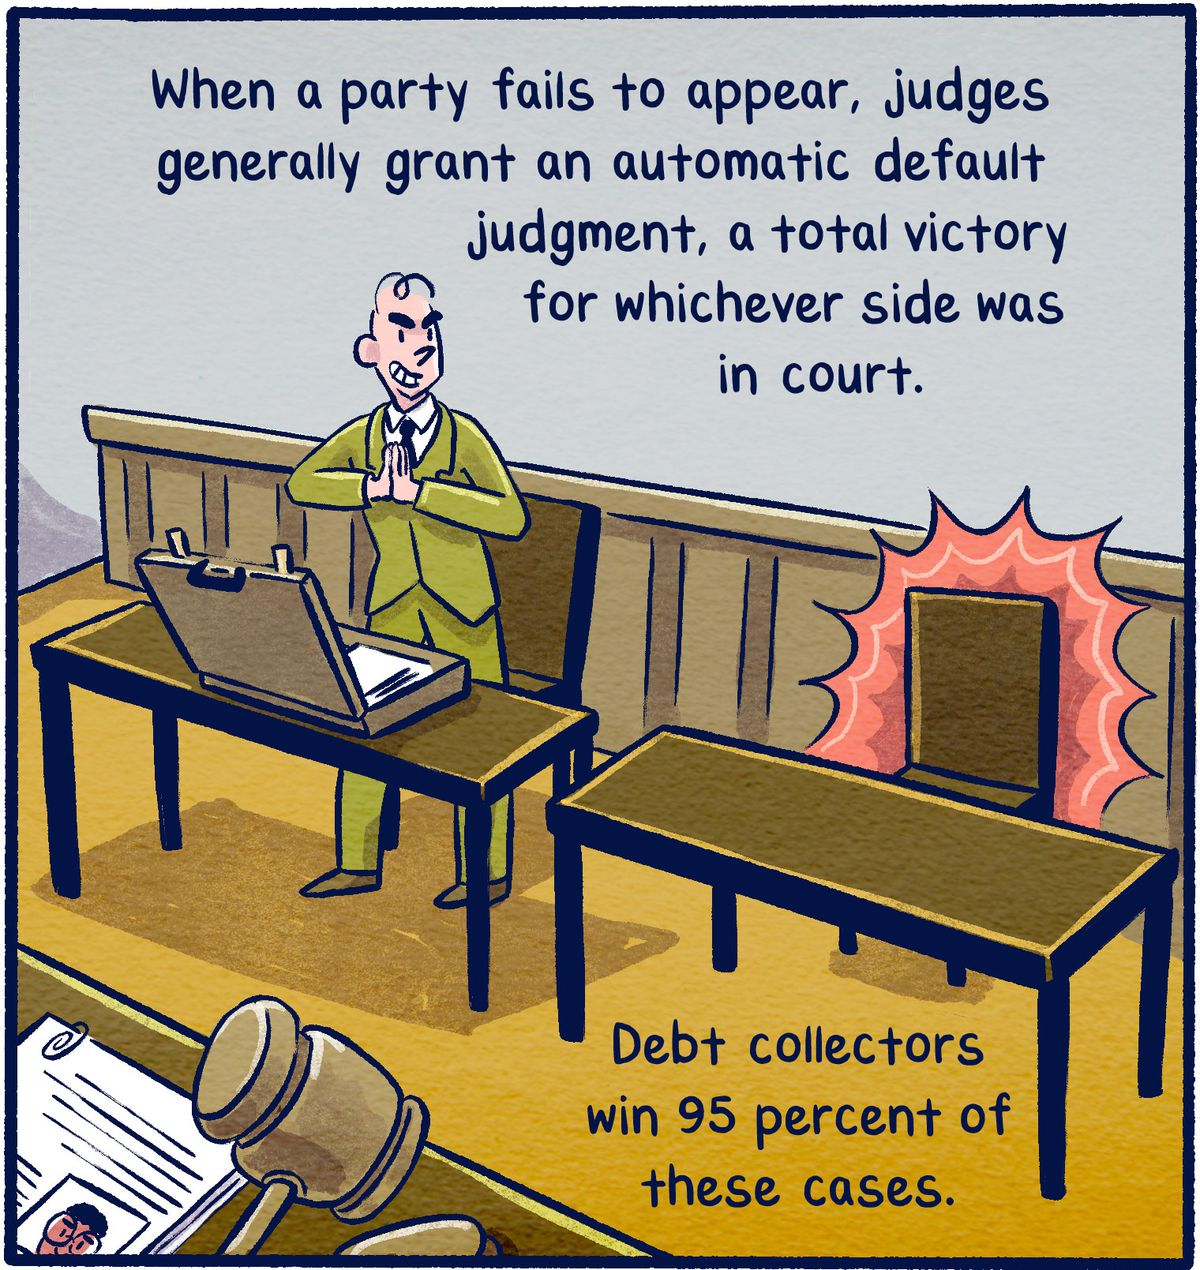 When a party fails to appear, judges generally grant an automatic default judgment, a total victory for whichever side was in court. Debt collectors win 95 percent of these cases.